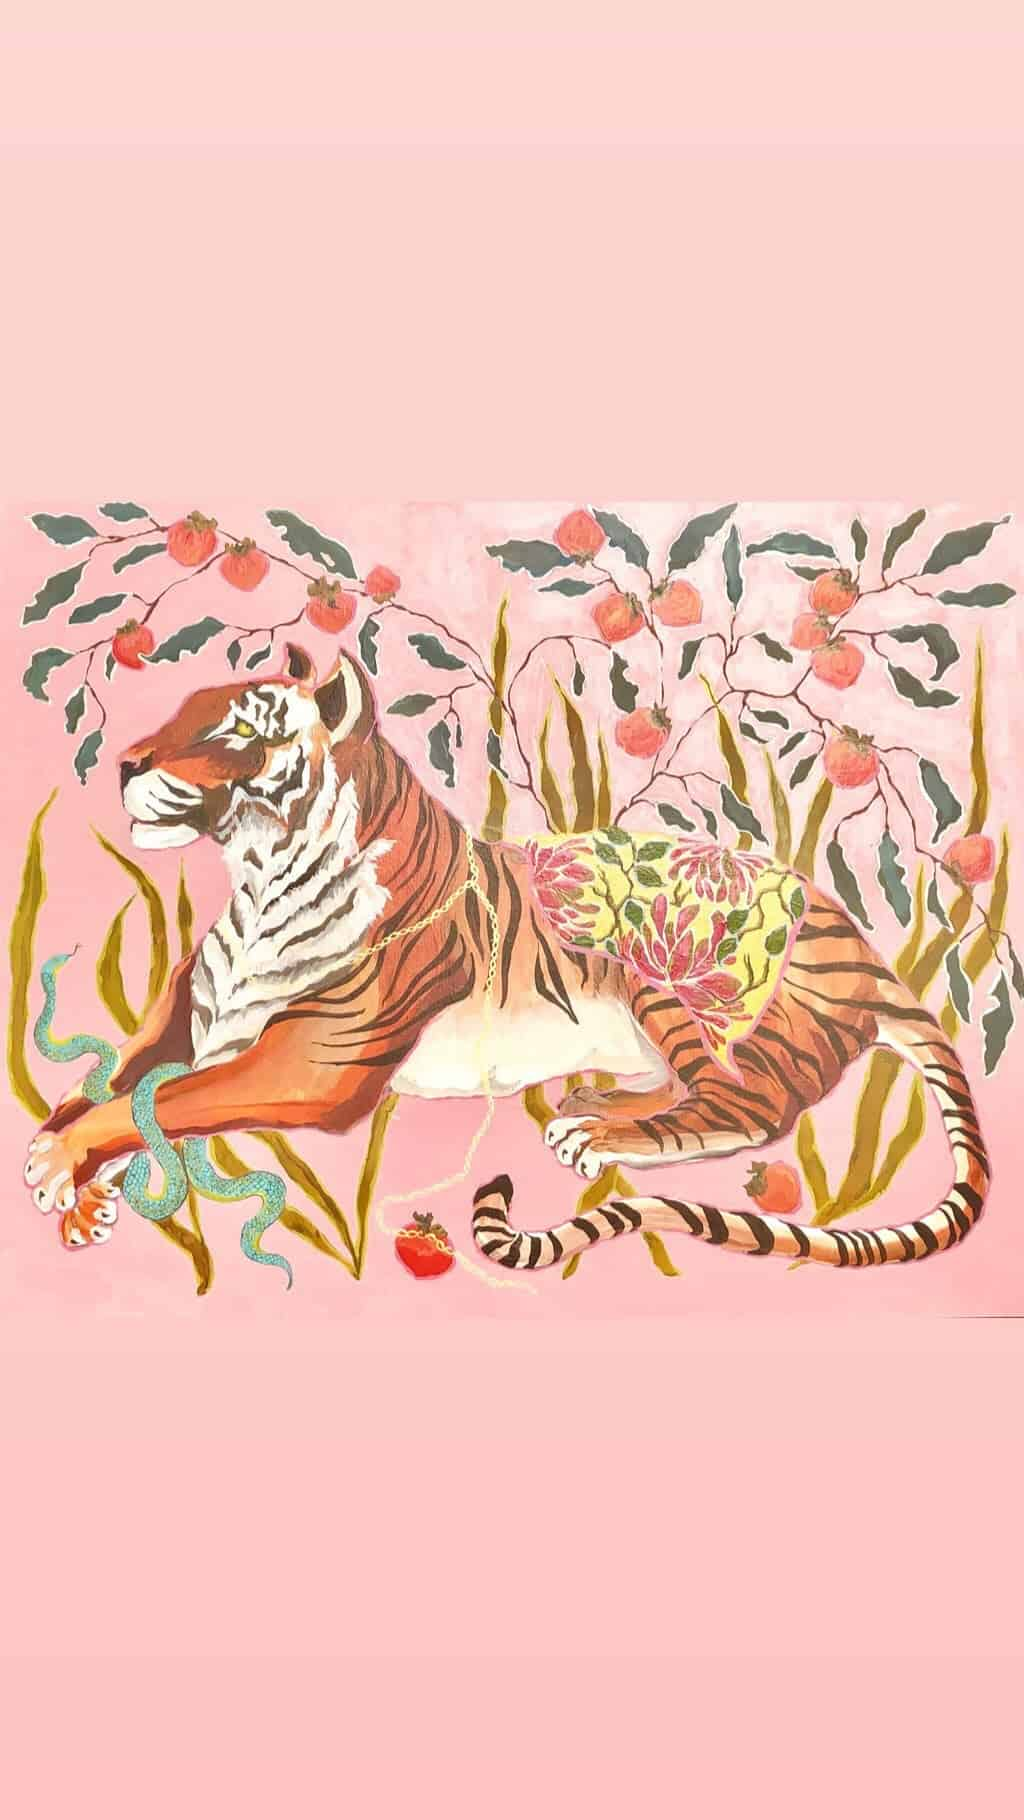 ART PRINT Tiger on Pink by Paige Gemmel